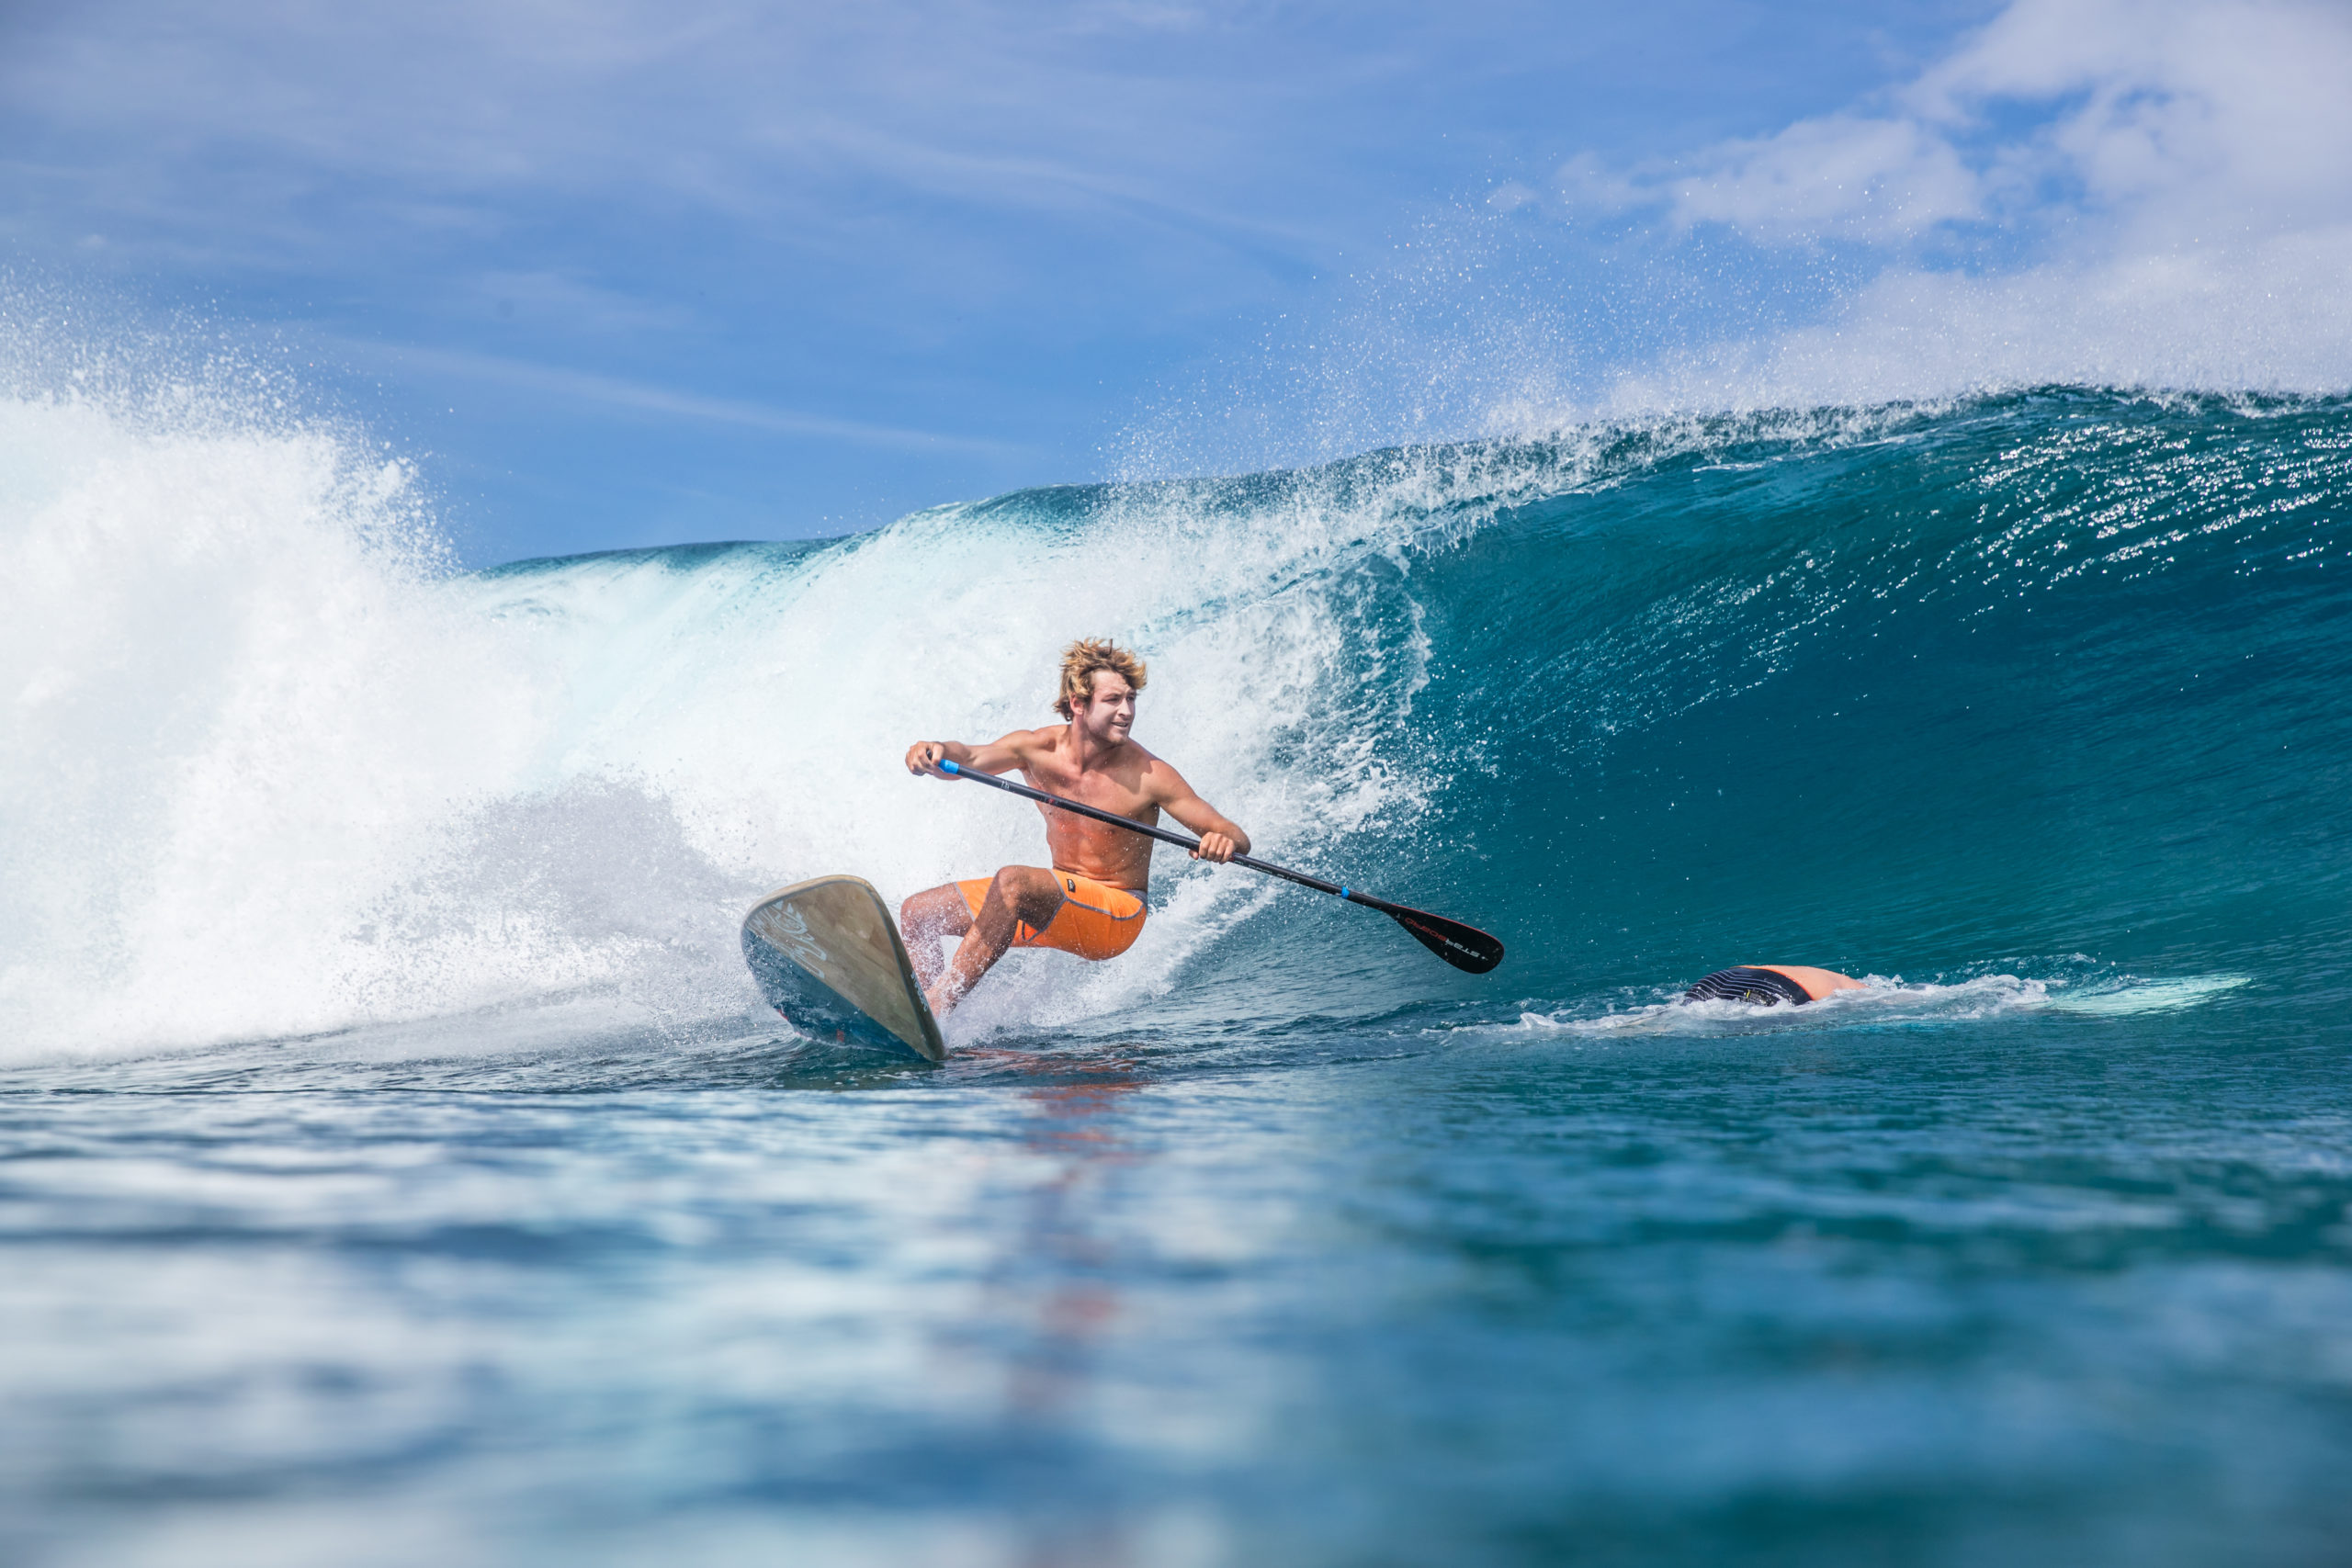 Sygma-sup-school- benoit-Carpentier-sup-surf-camp-supcamp-standuppaddle-stand-up-paddle-book-holiday-portugal-masterclass-worldchampion (15)